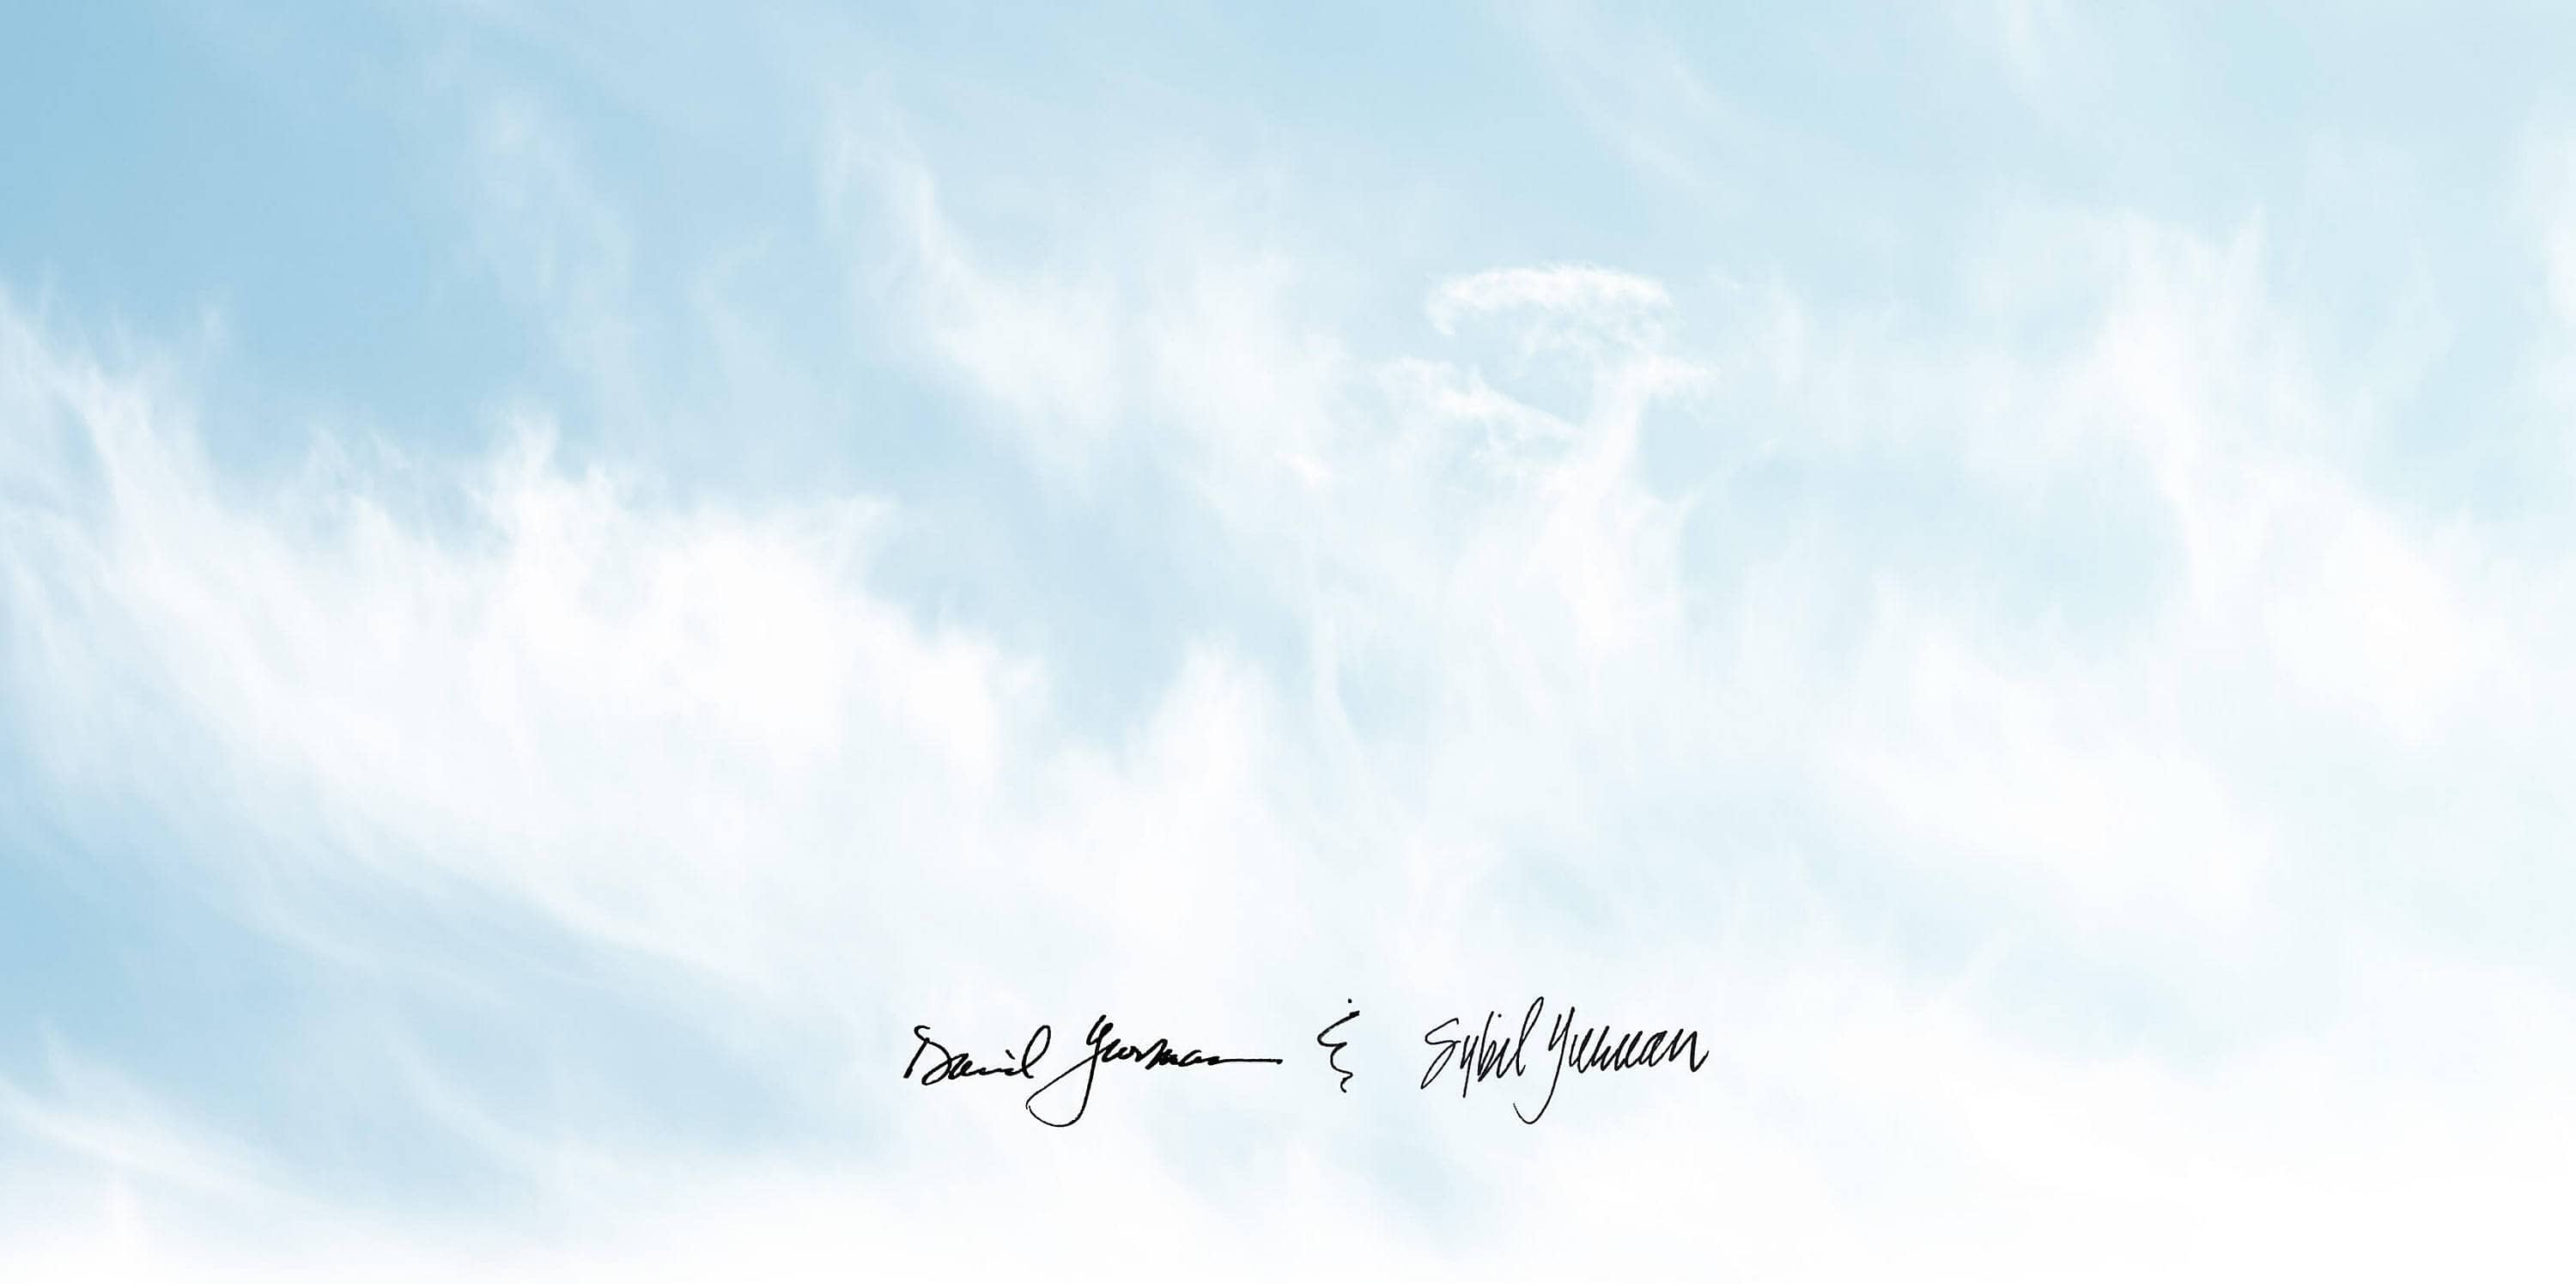 A photo shows a bright-blue sky filled with wispy clouds and David and Sybil Yurman's handwritten signatures in black ink below the introduction copy on the page.